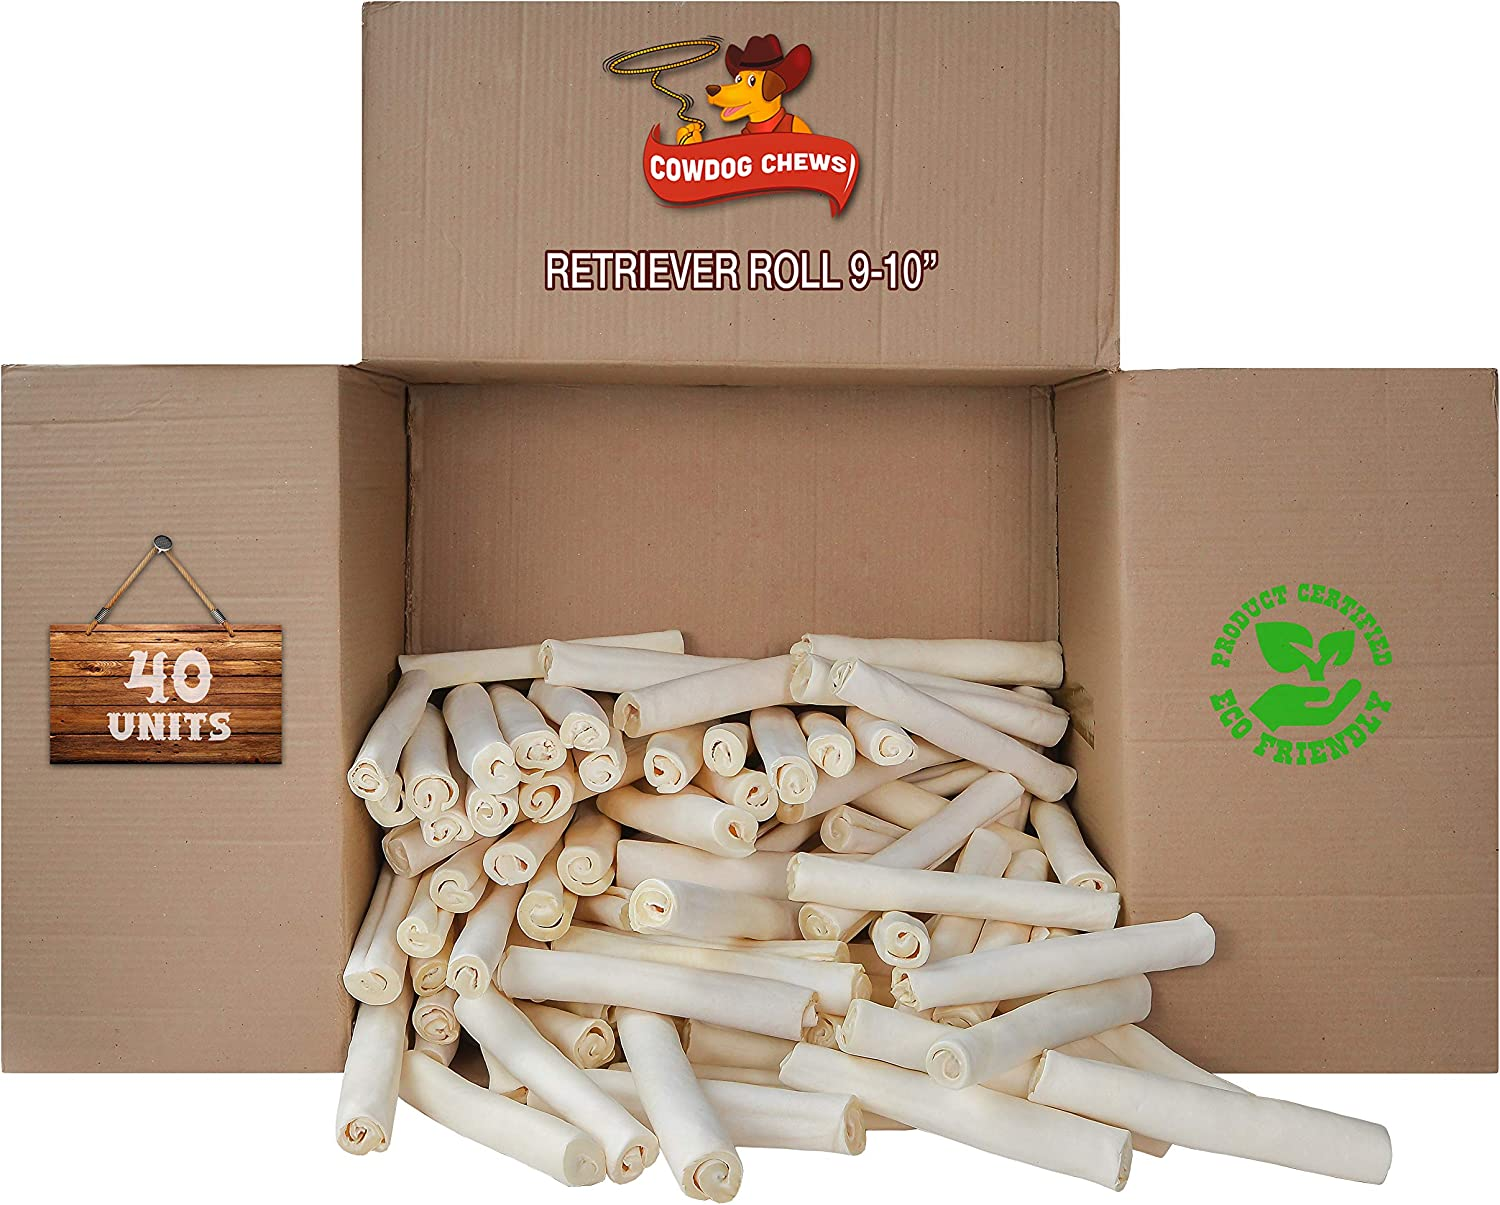 Retriever roll 9-10 inch All famous Product Rawhide Genuine Natural 40 Pack